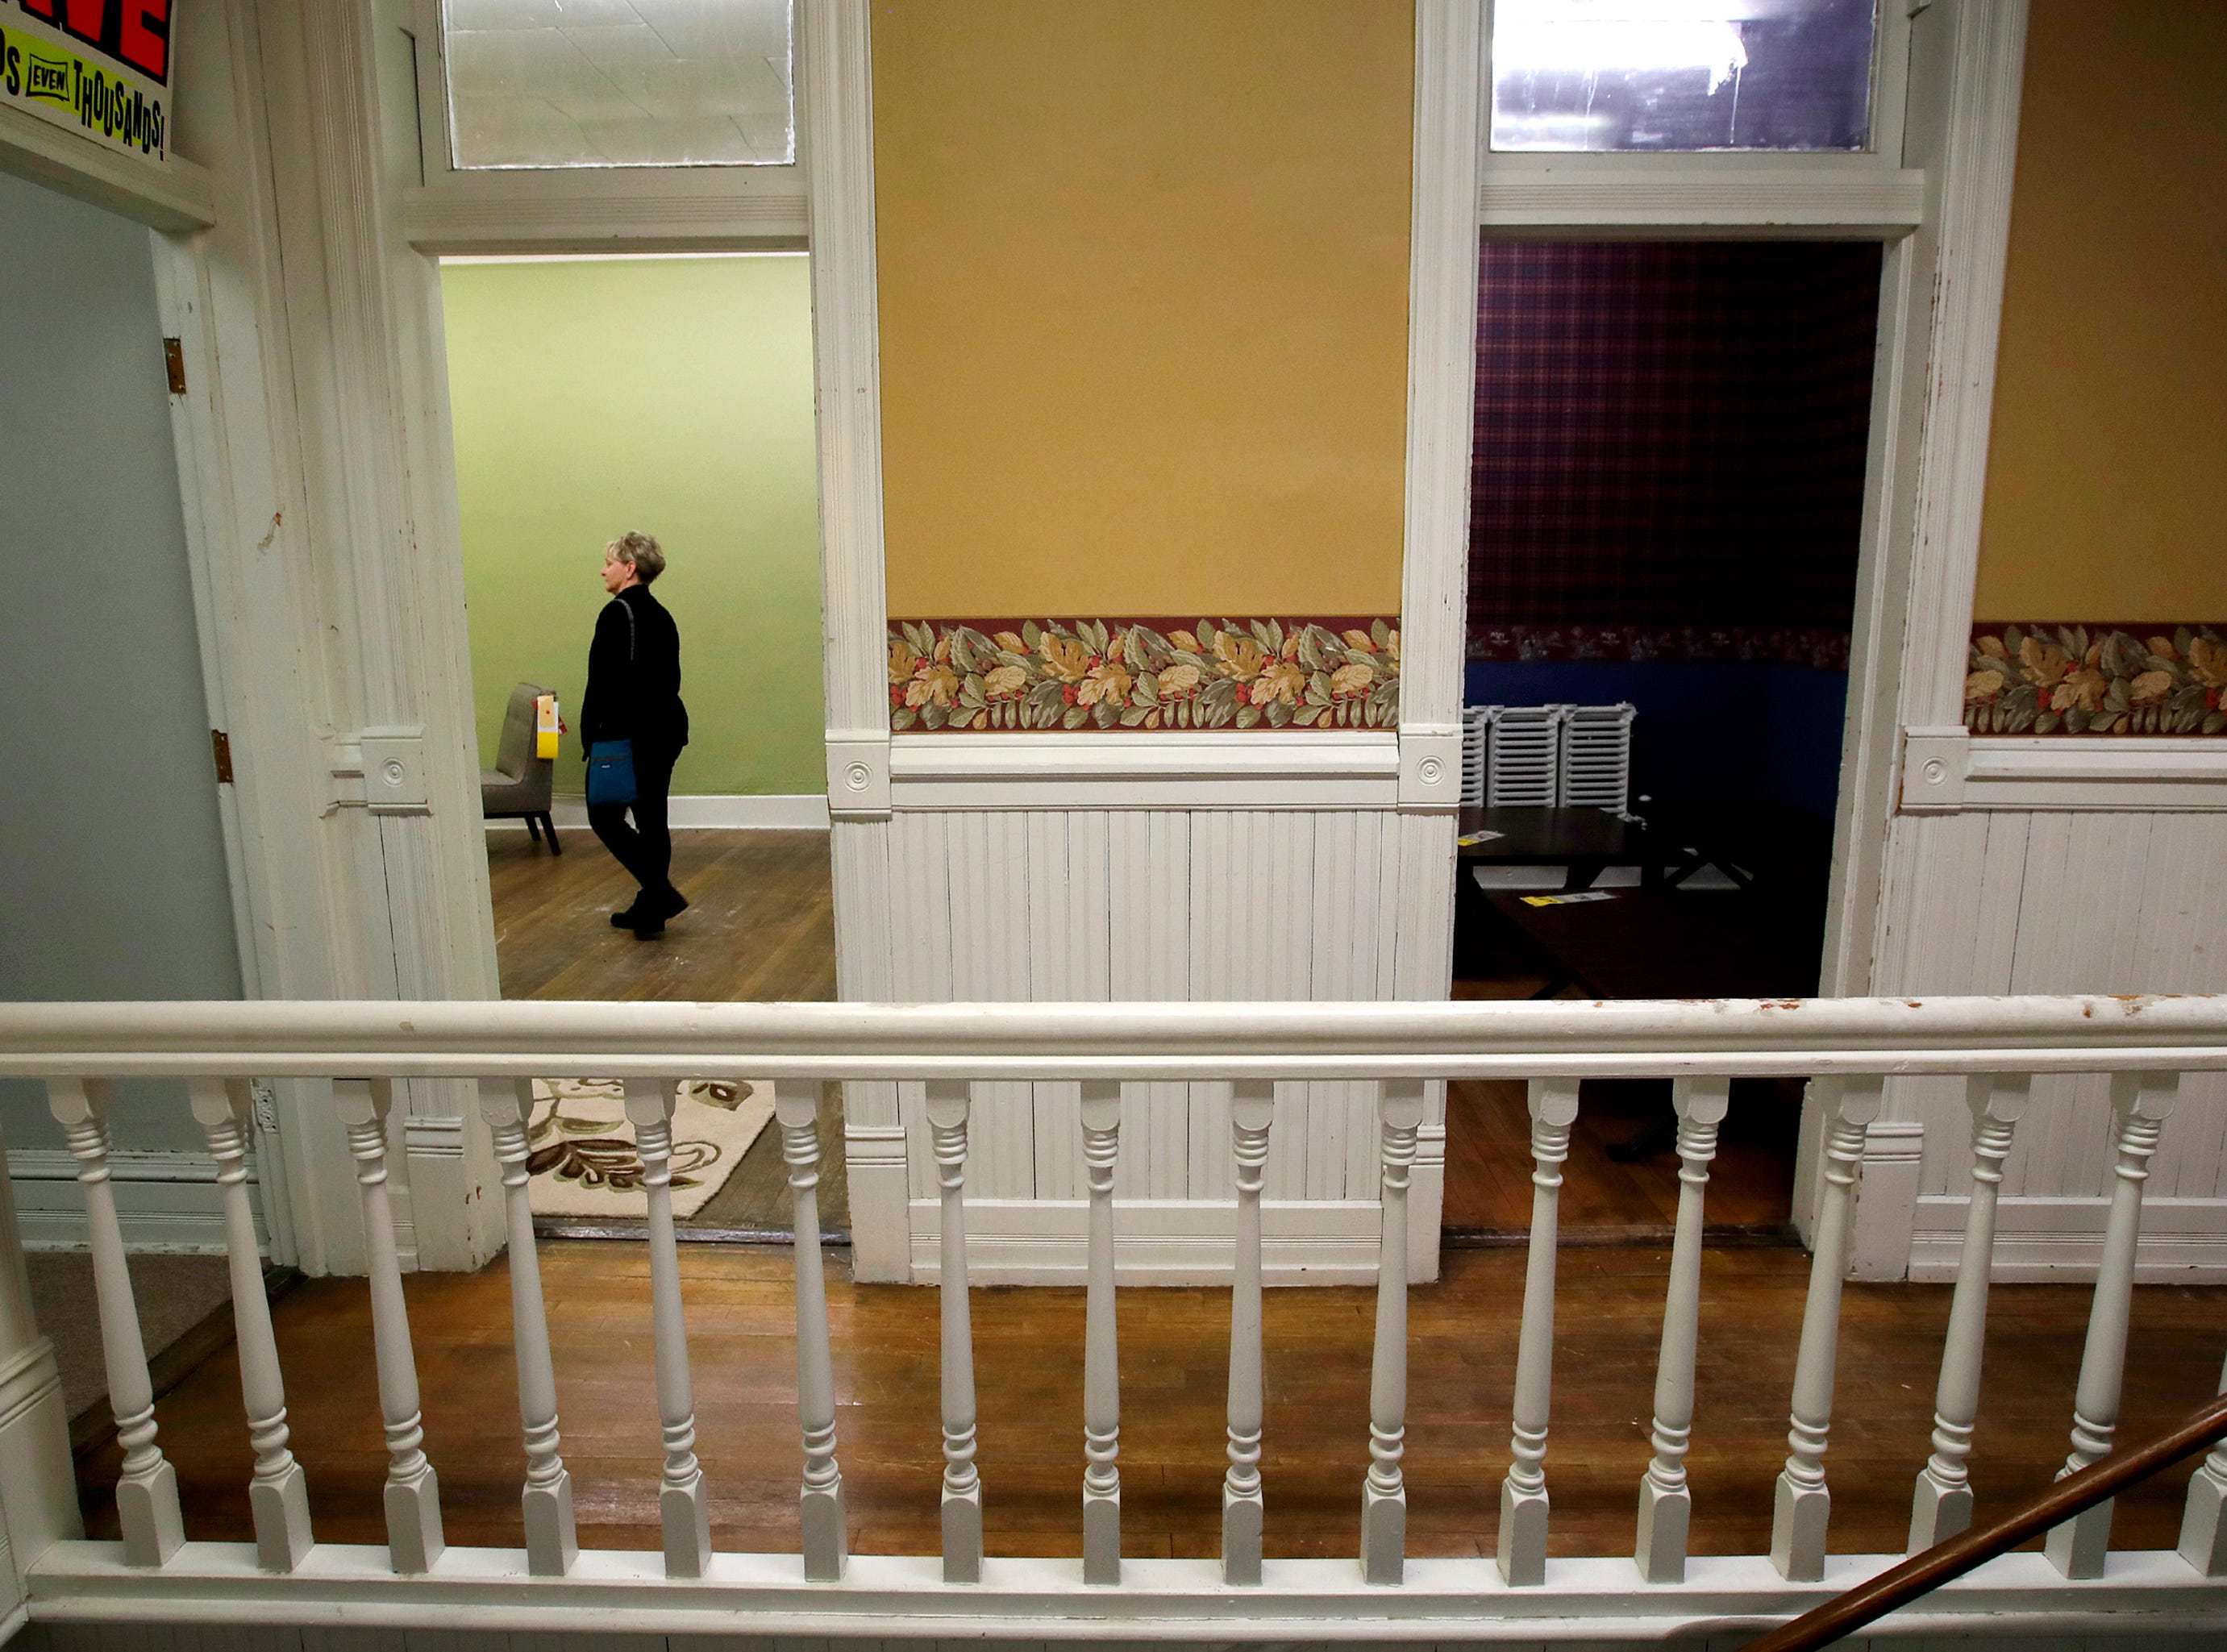 Laura Sinclair, of Appleton, walks through Gabriel Furniture Thursday, April 18, 2019, in Appleton, Wis. The building that houses the furniture store was built in 1888.Danny Damiani/USA TODAY NETWORK-Wisconsin